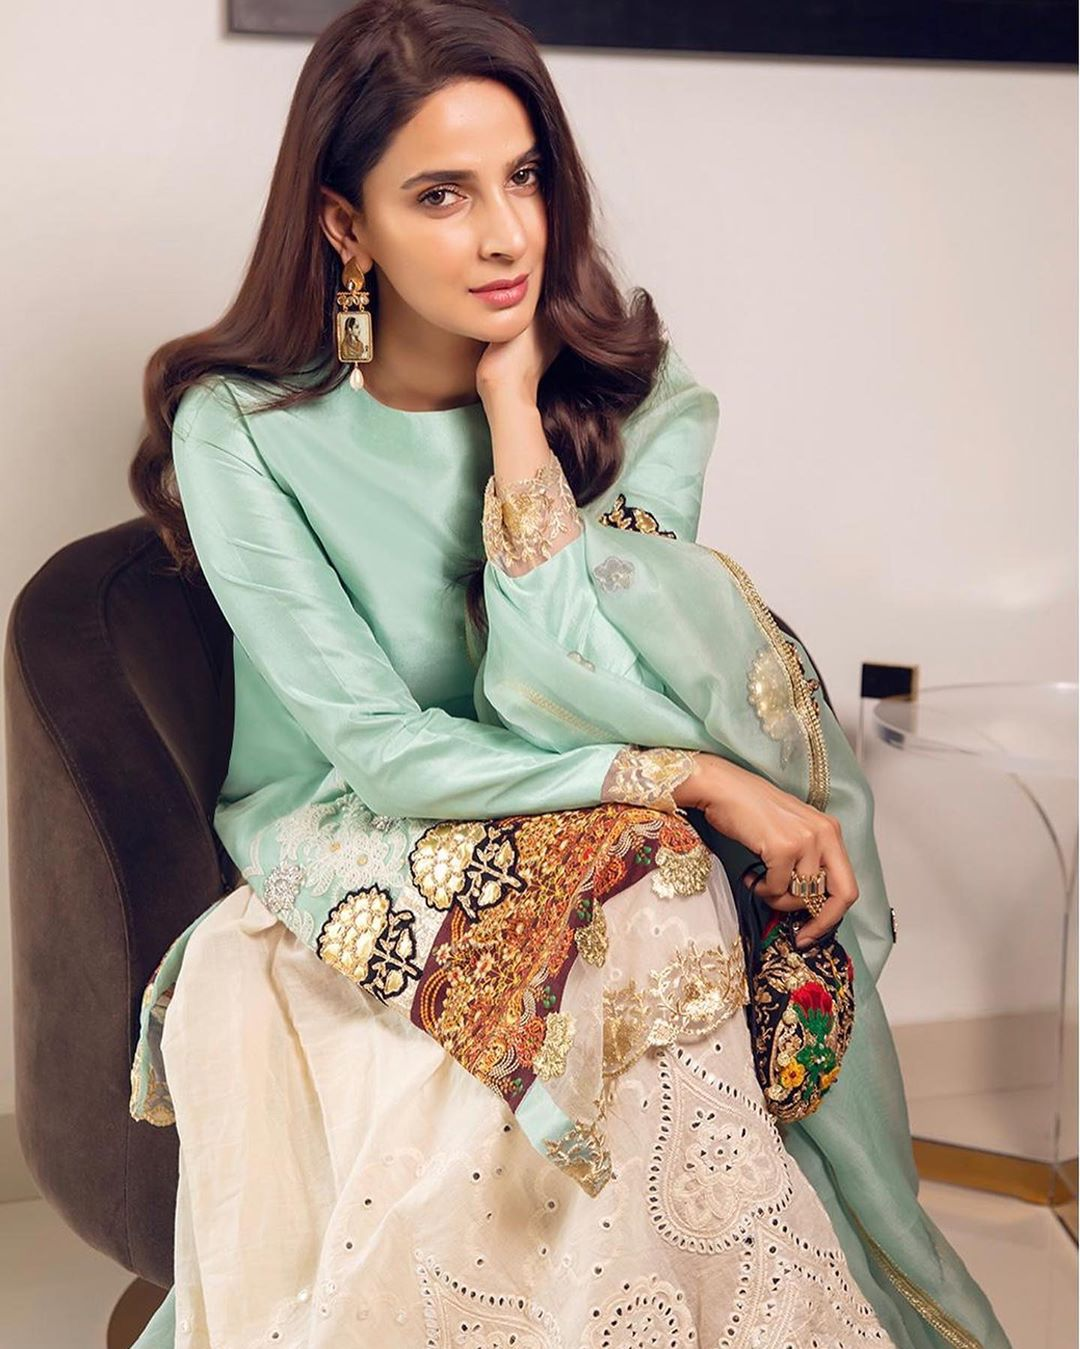 Saba Qamar Latest Beautiful Pictures from Instagram